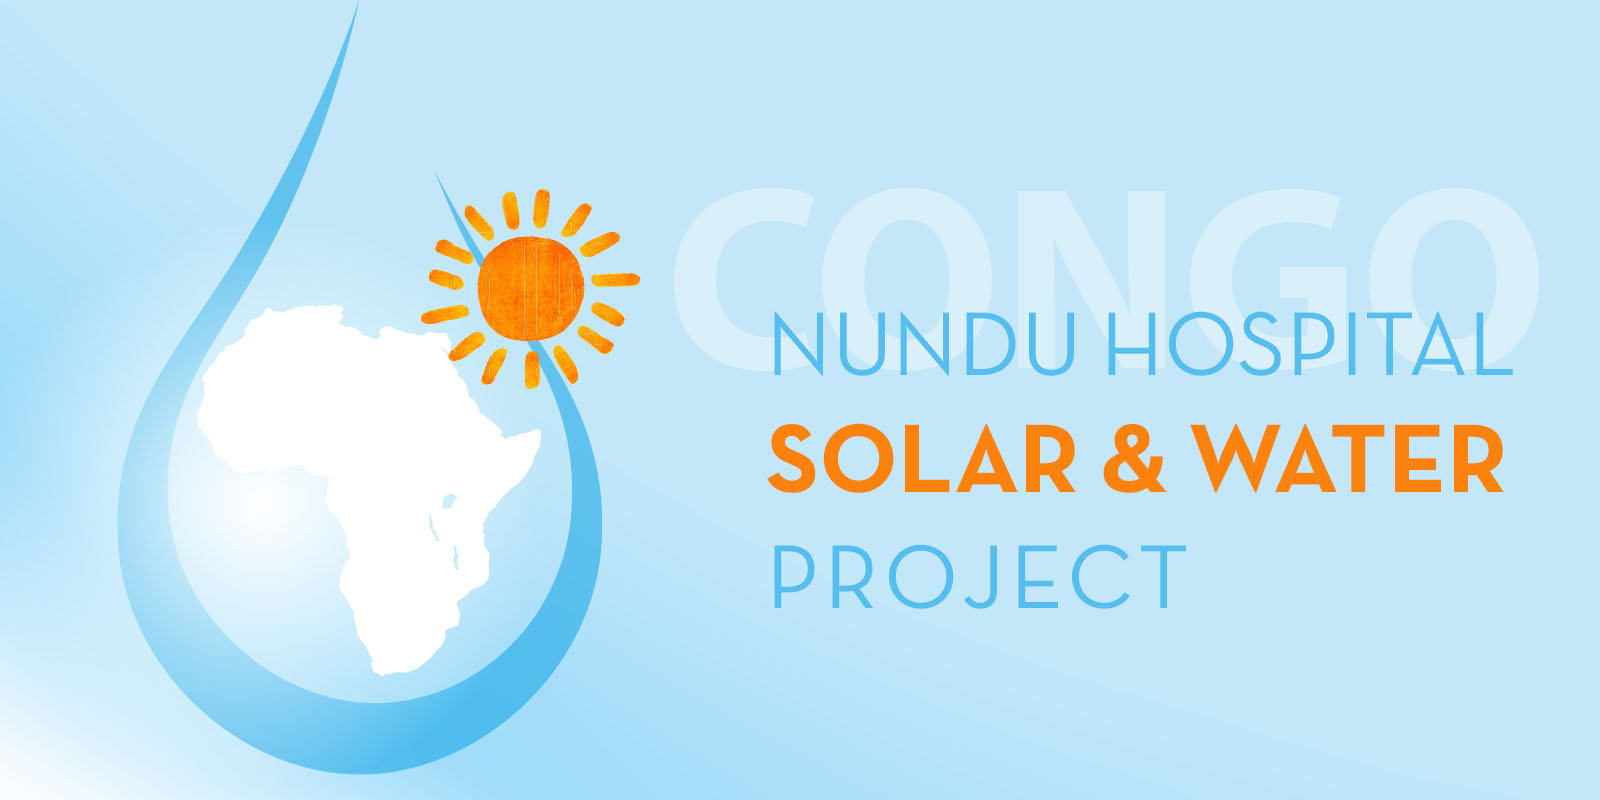 Nundu Hospital Solar & Water Project